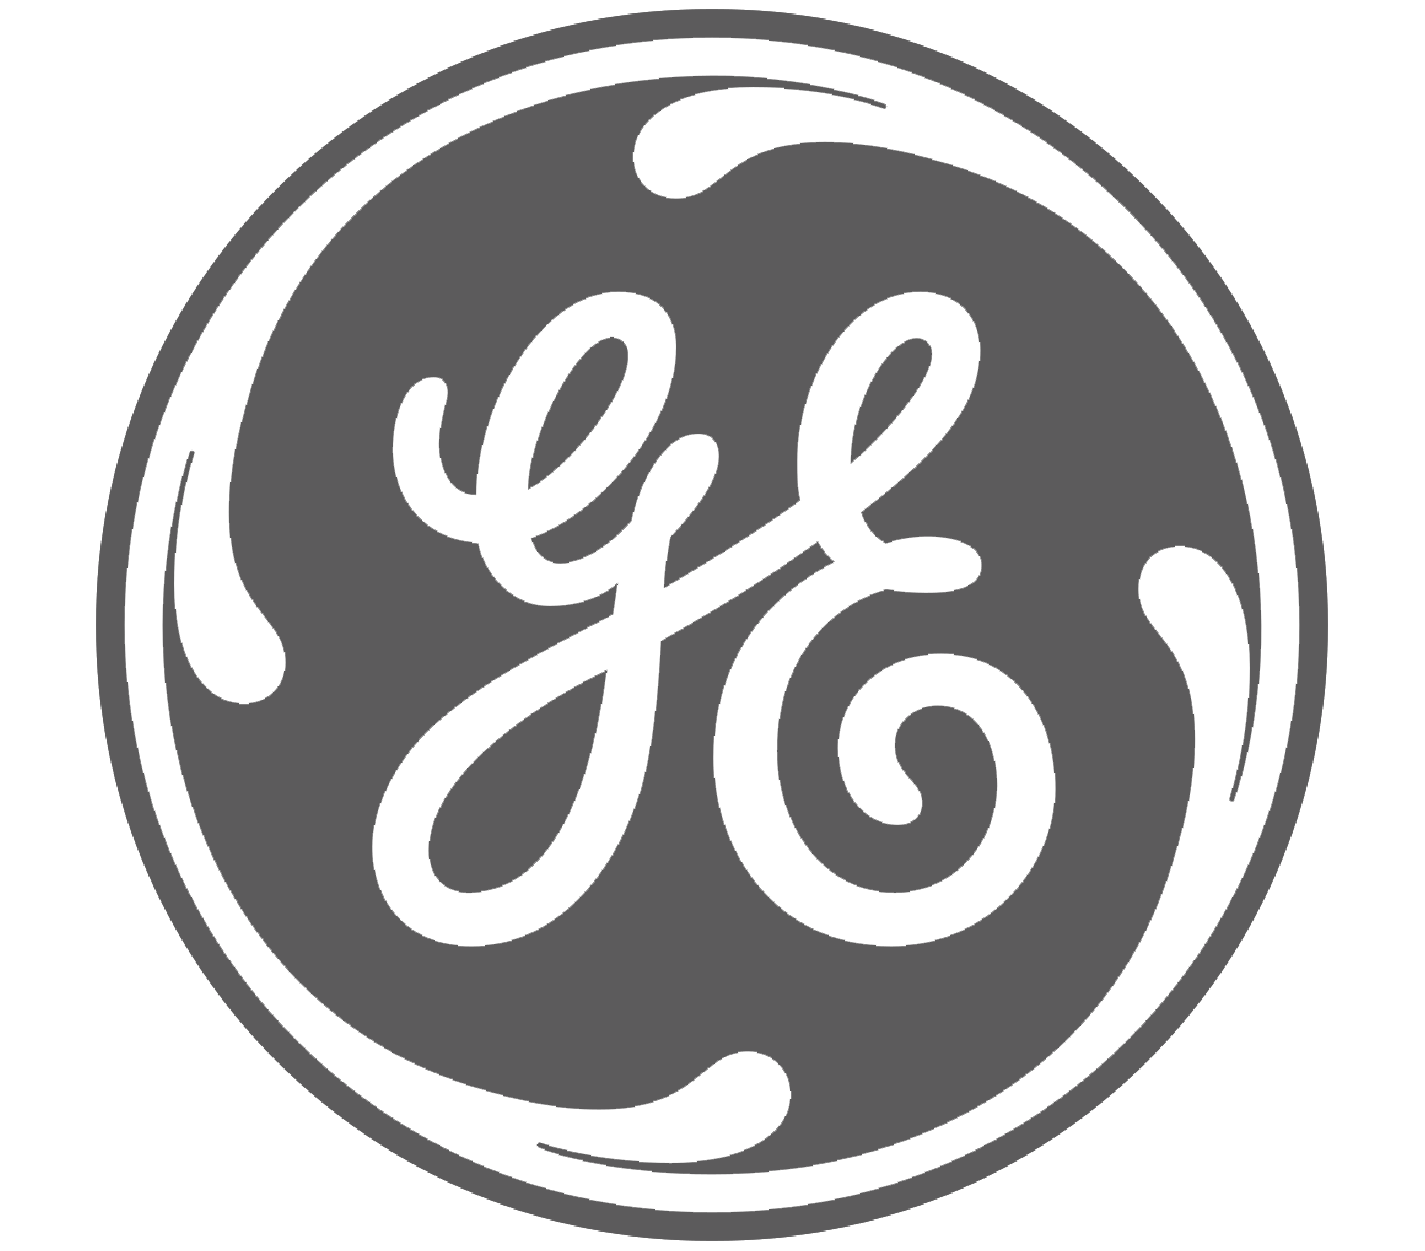 The logo of General Electric